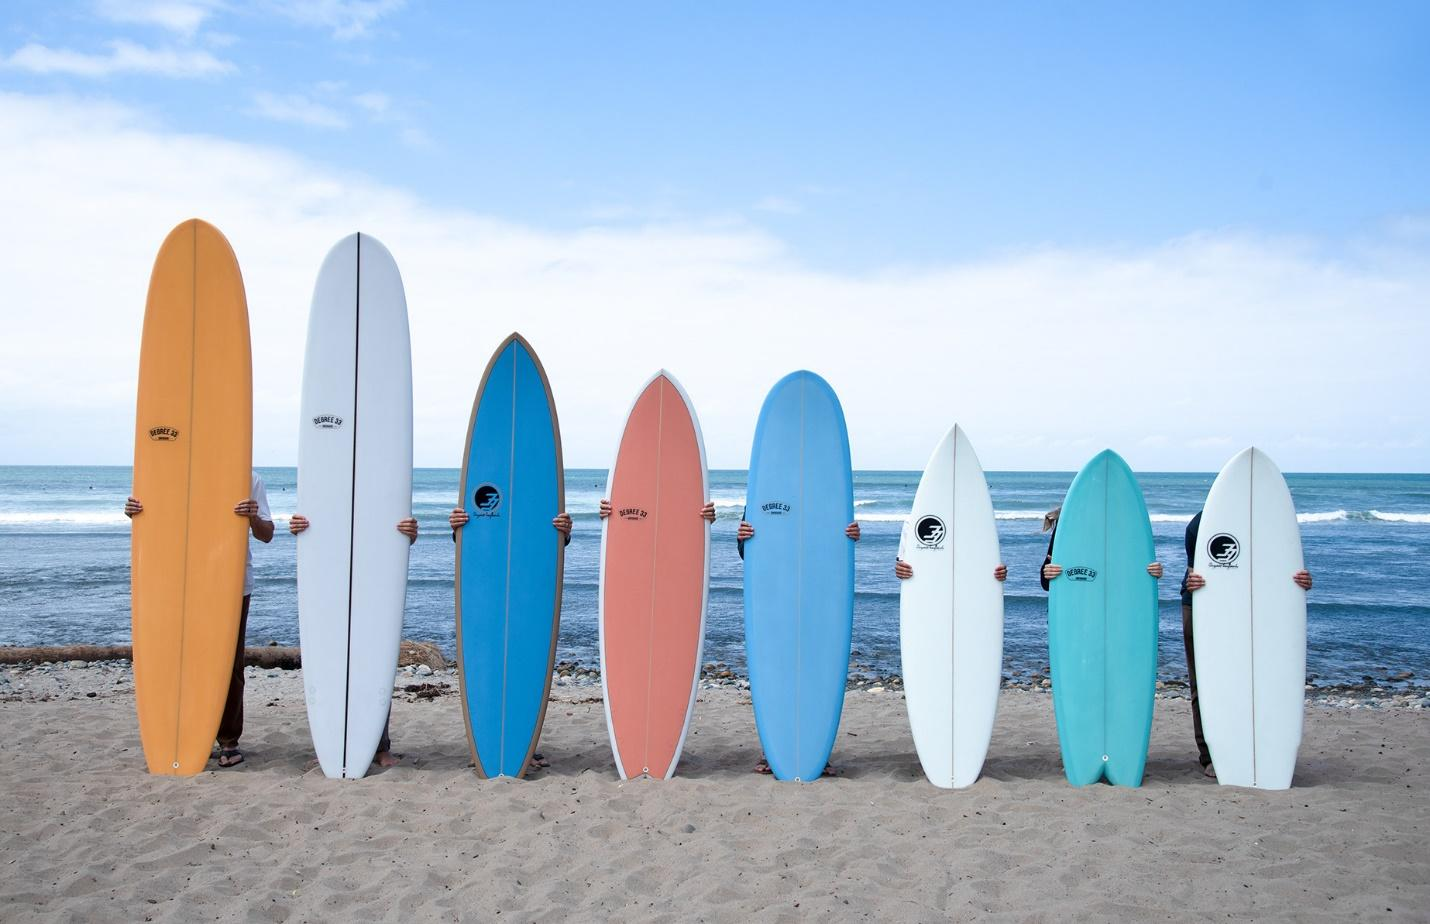 Rent a surfboard anywhere & get paid to share yours - The Quiver